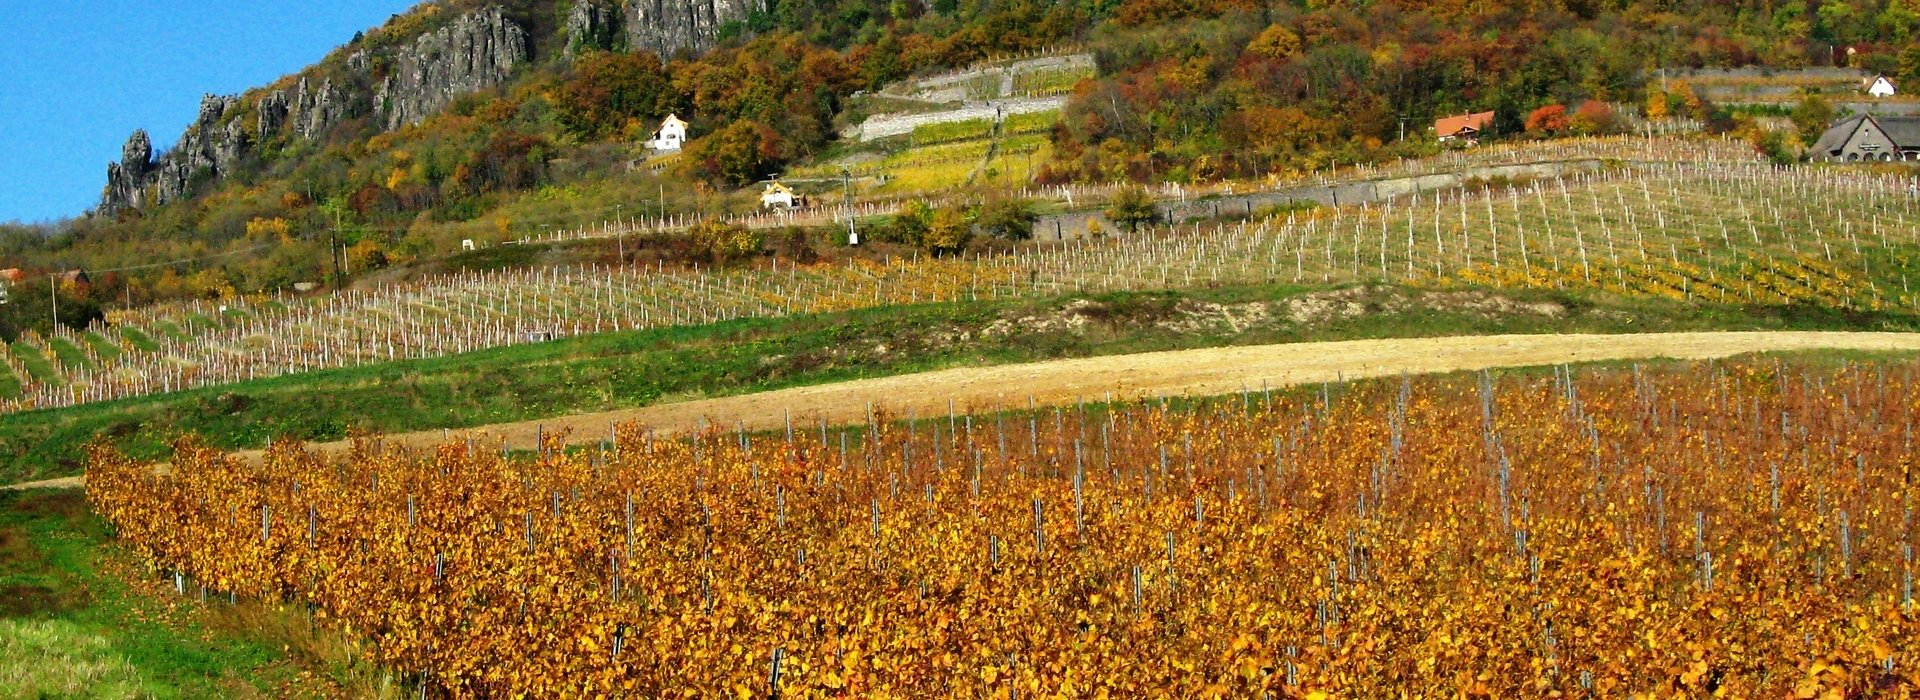 Eger Wineregion